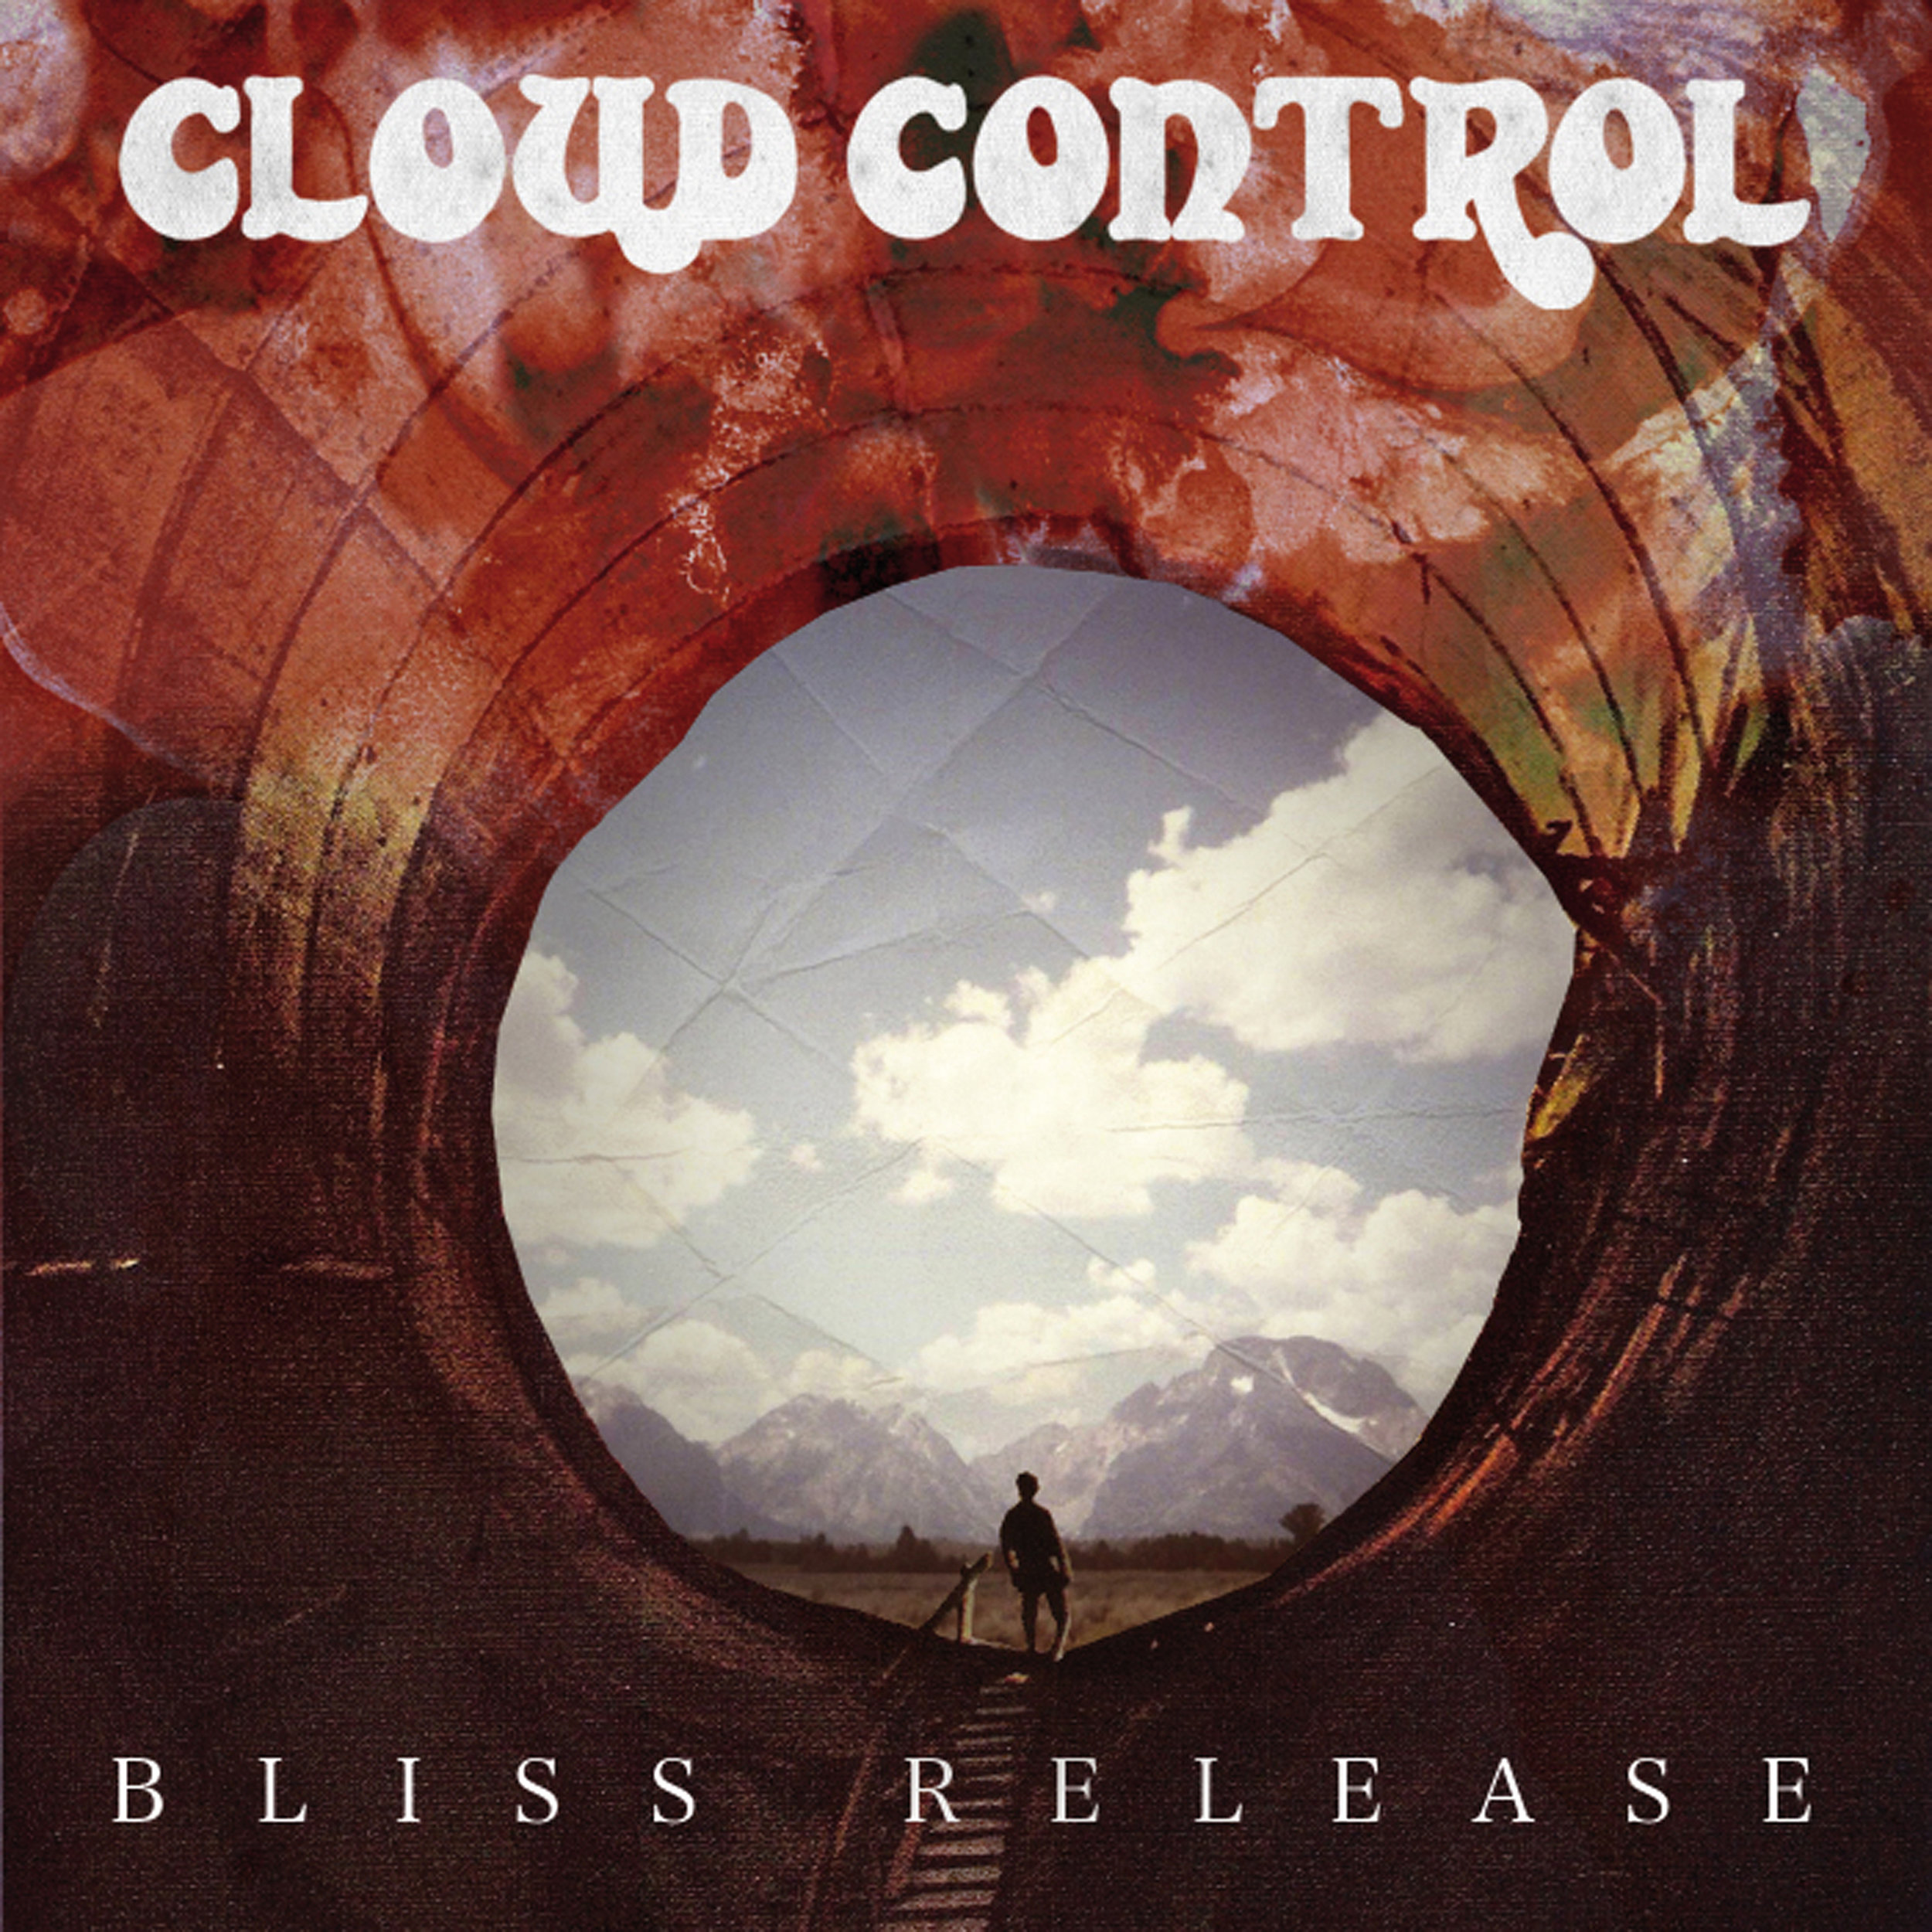 - Cloud ControlBliss Release (Album - 2010)Producer, engineer, mixingChoice cut - Meditation Song #2 (Why, Oh Why)